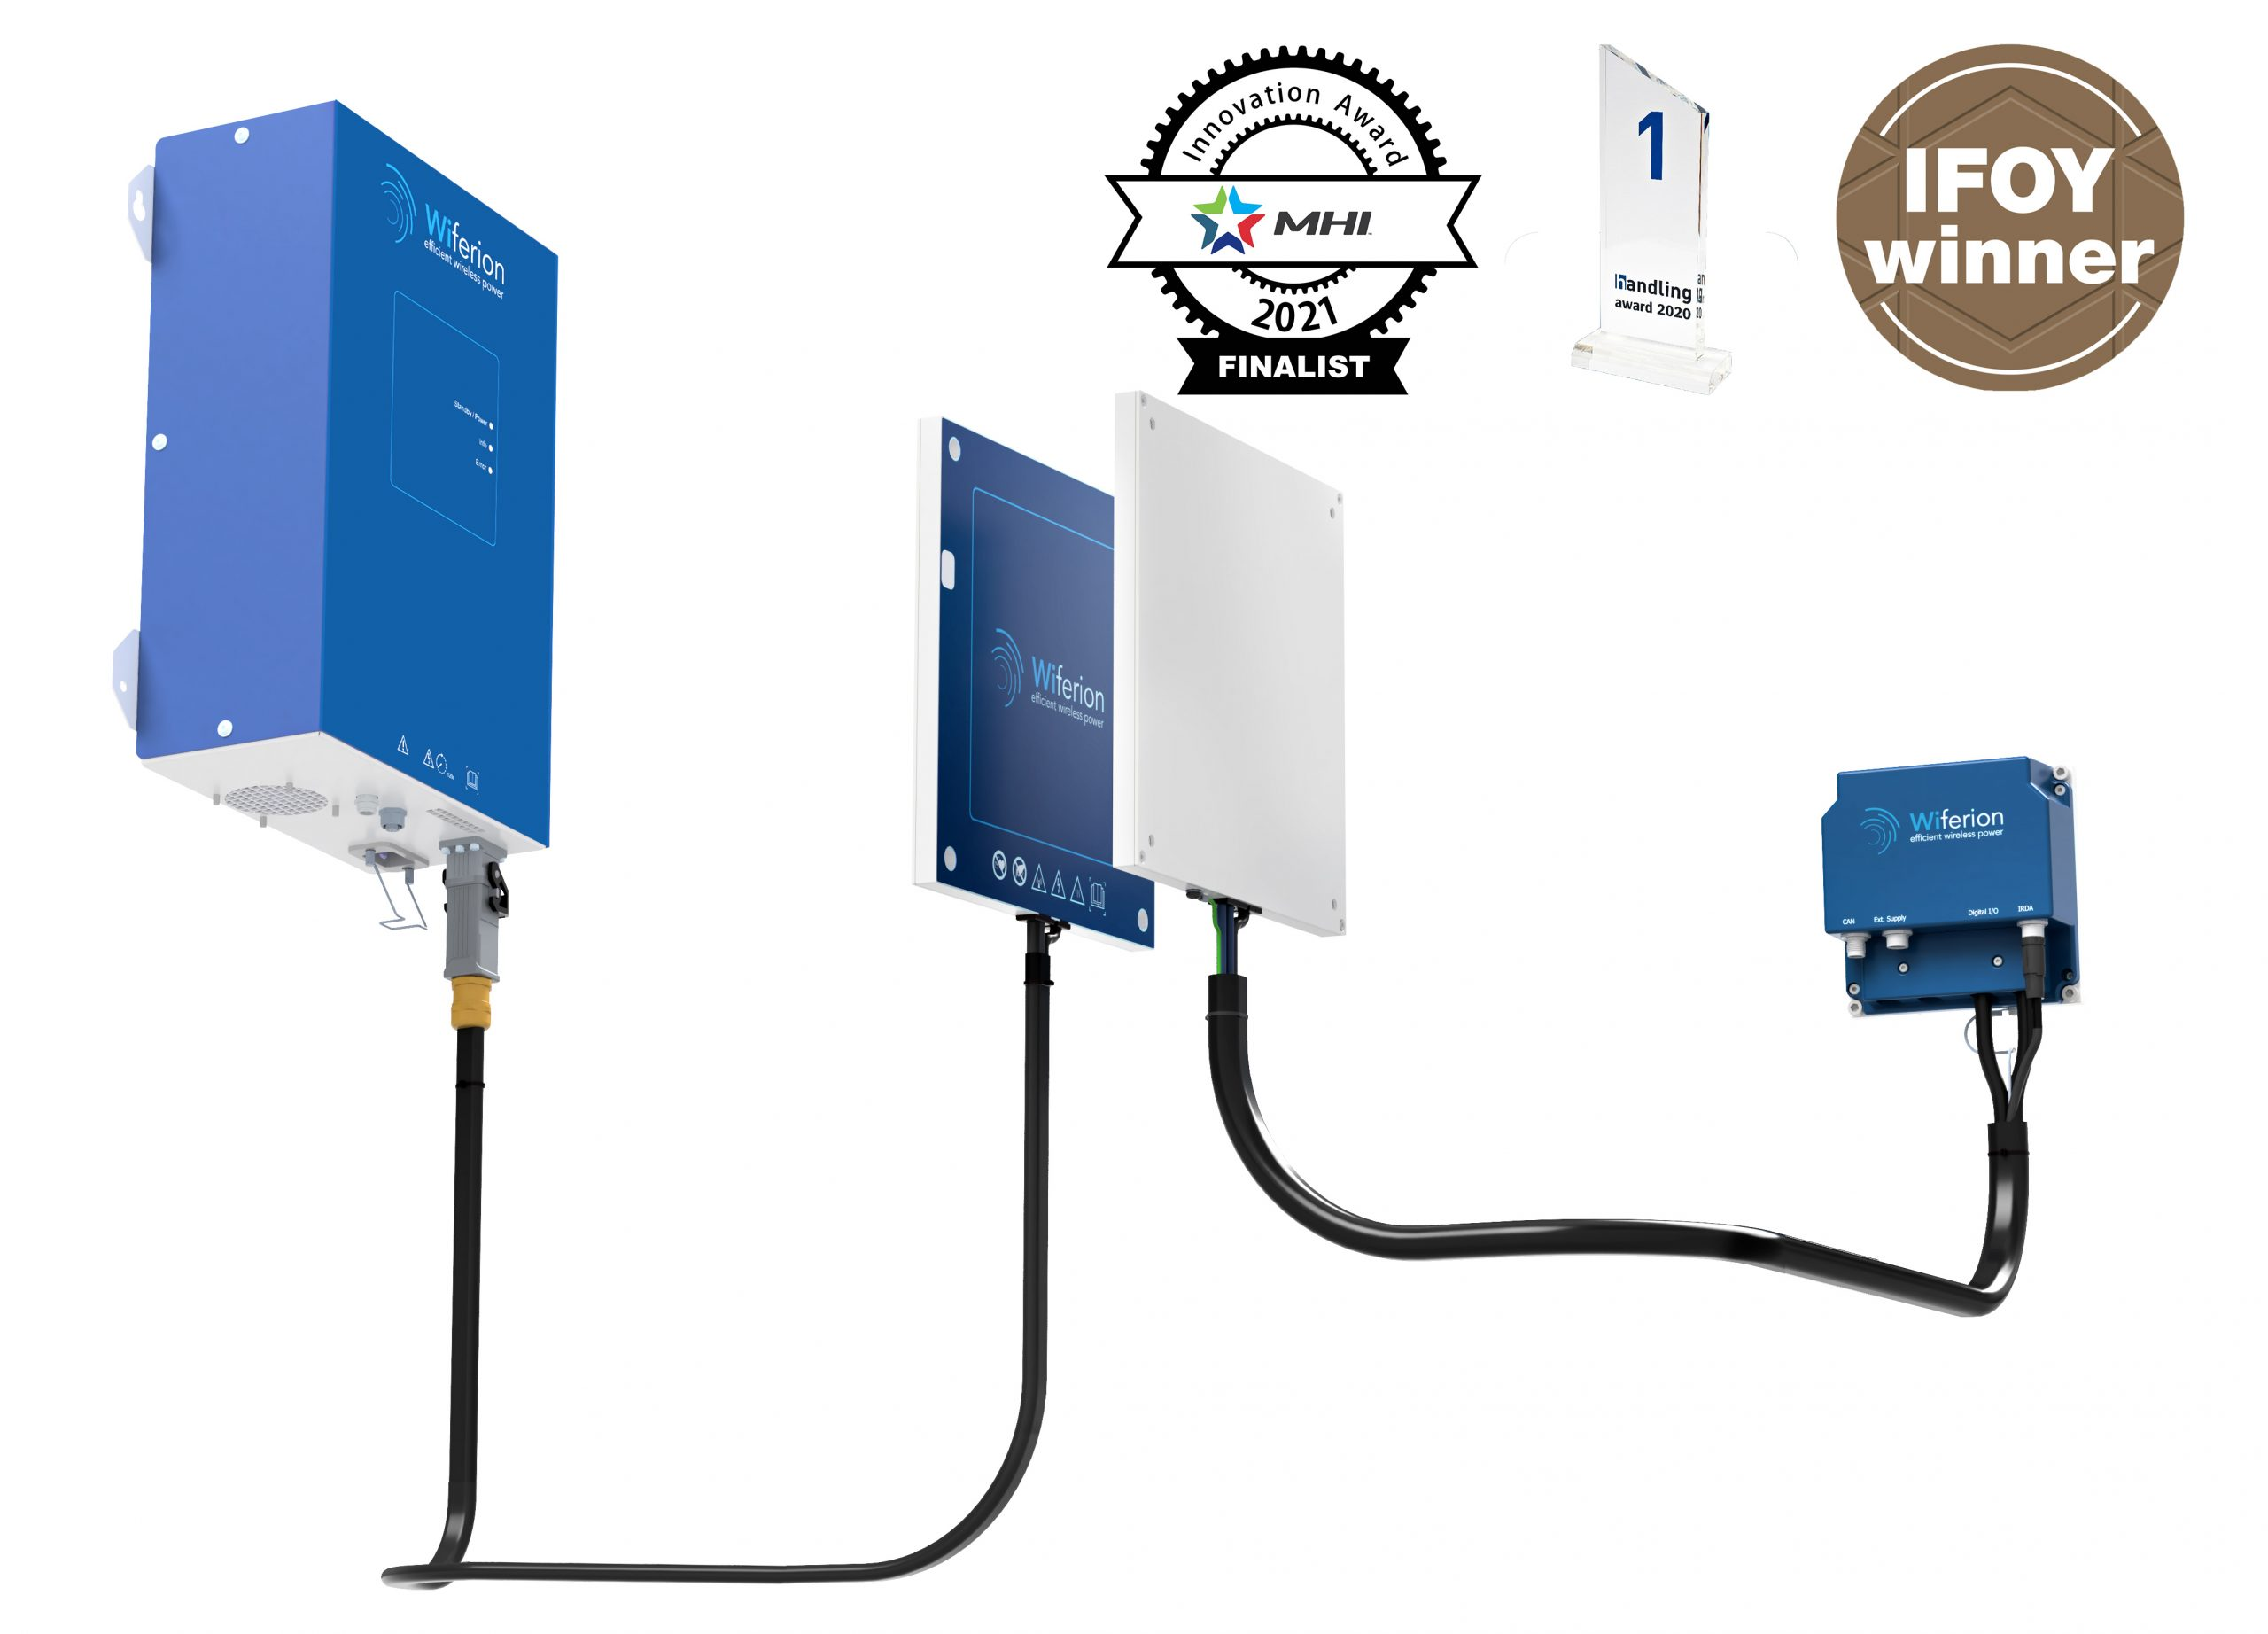 inductive battery charging system - inductive charging systems - wiferion etalink 3000